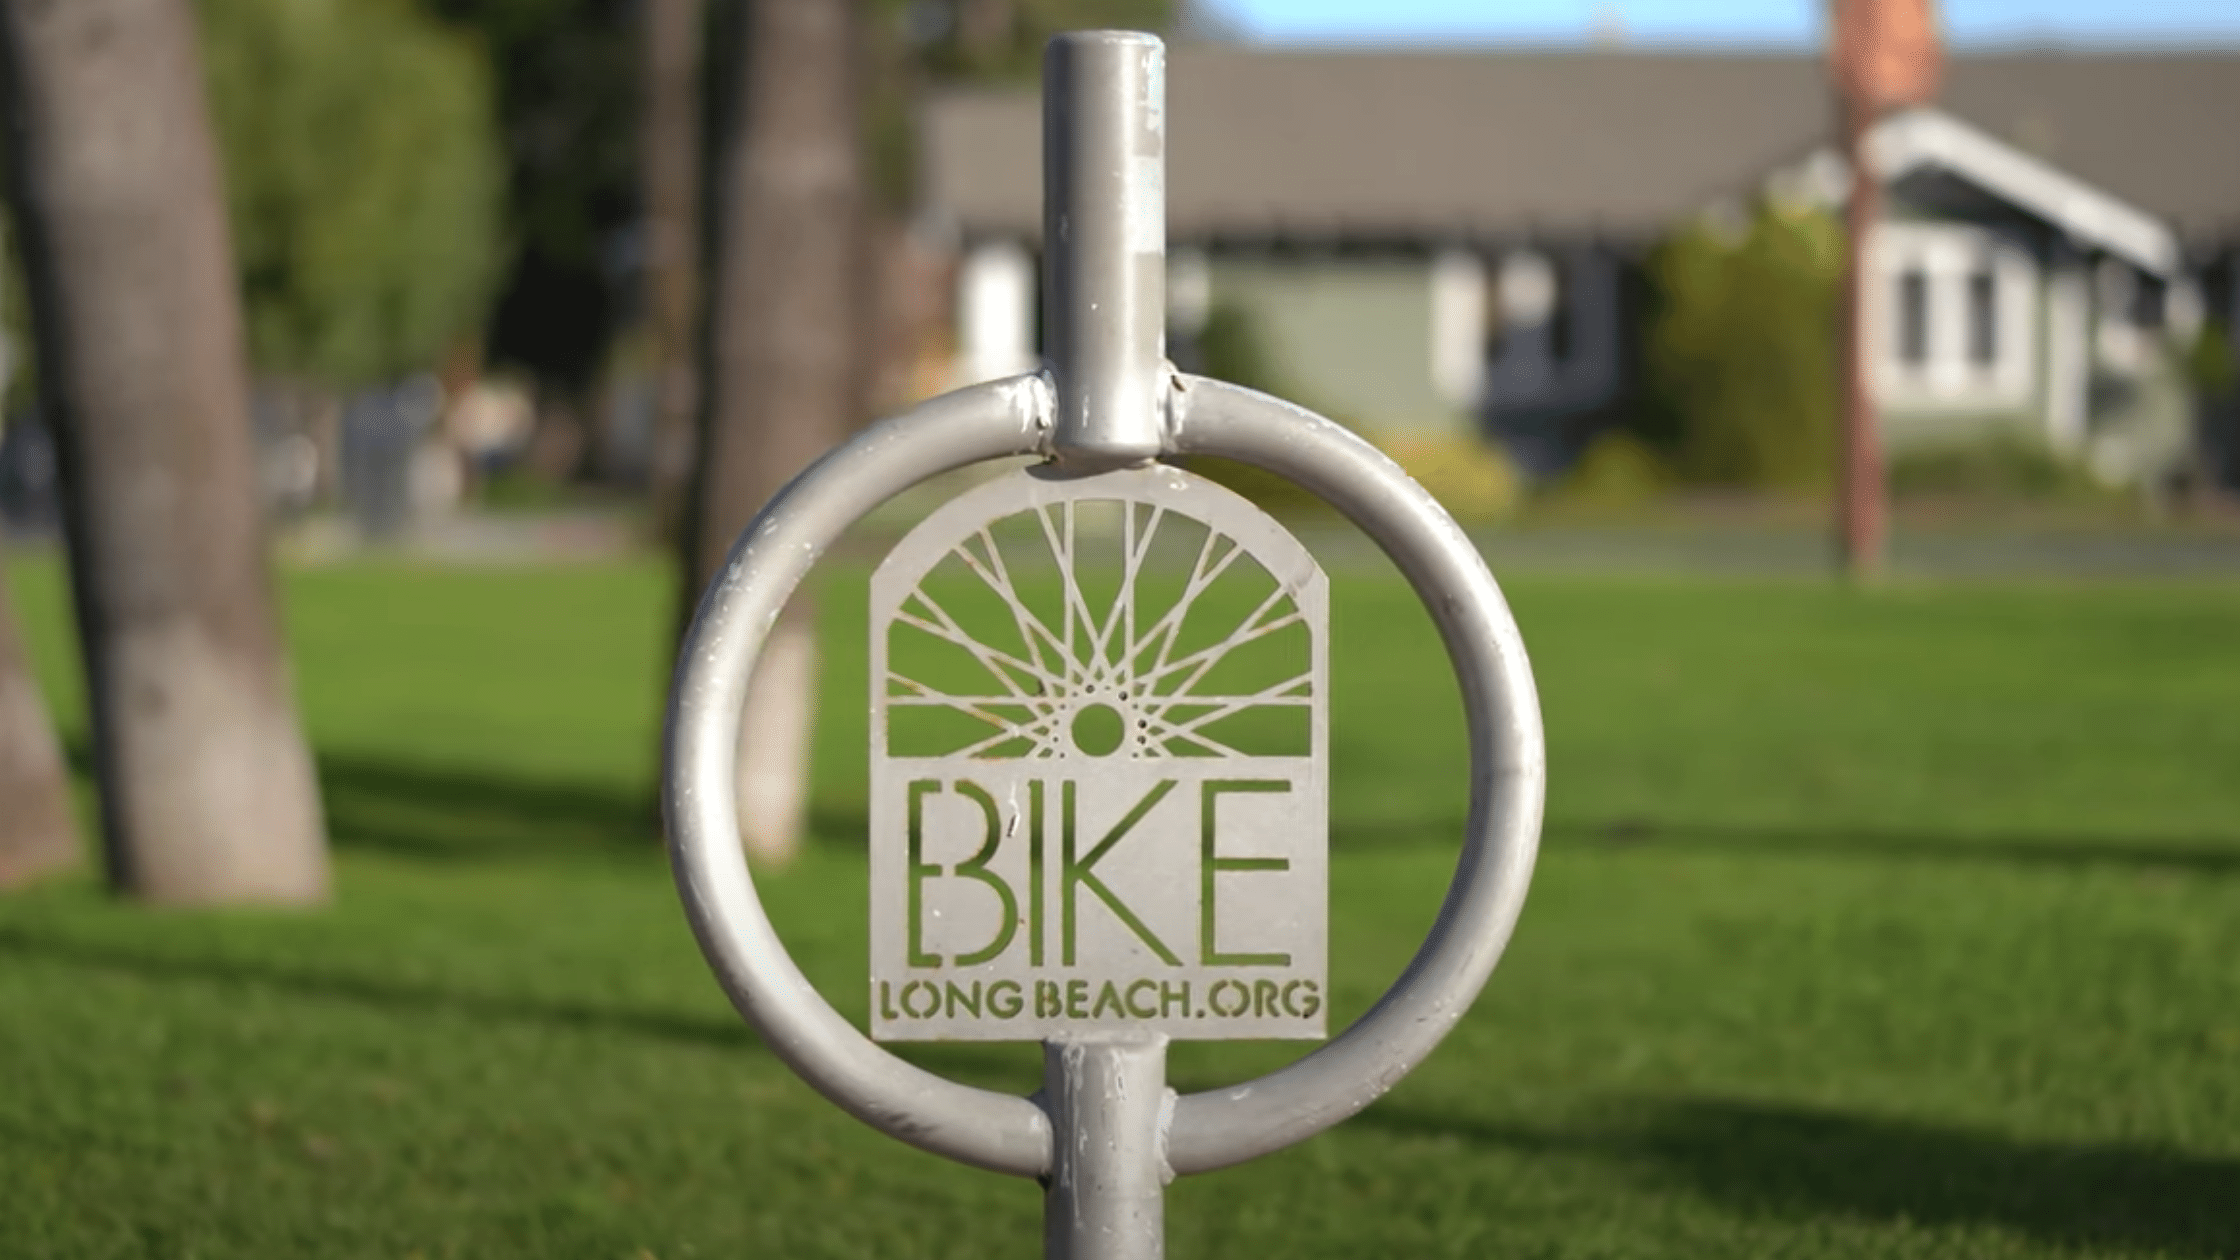 Bike-Friendly Long Beach